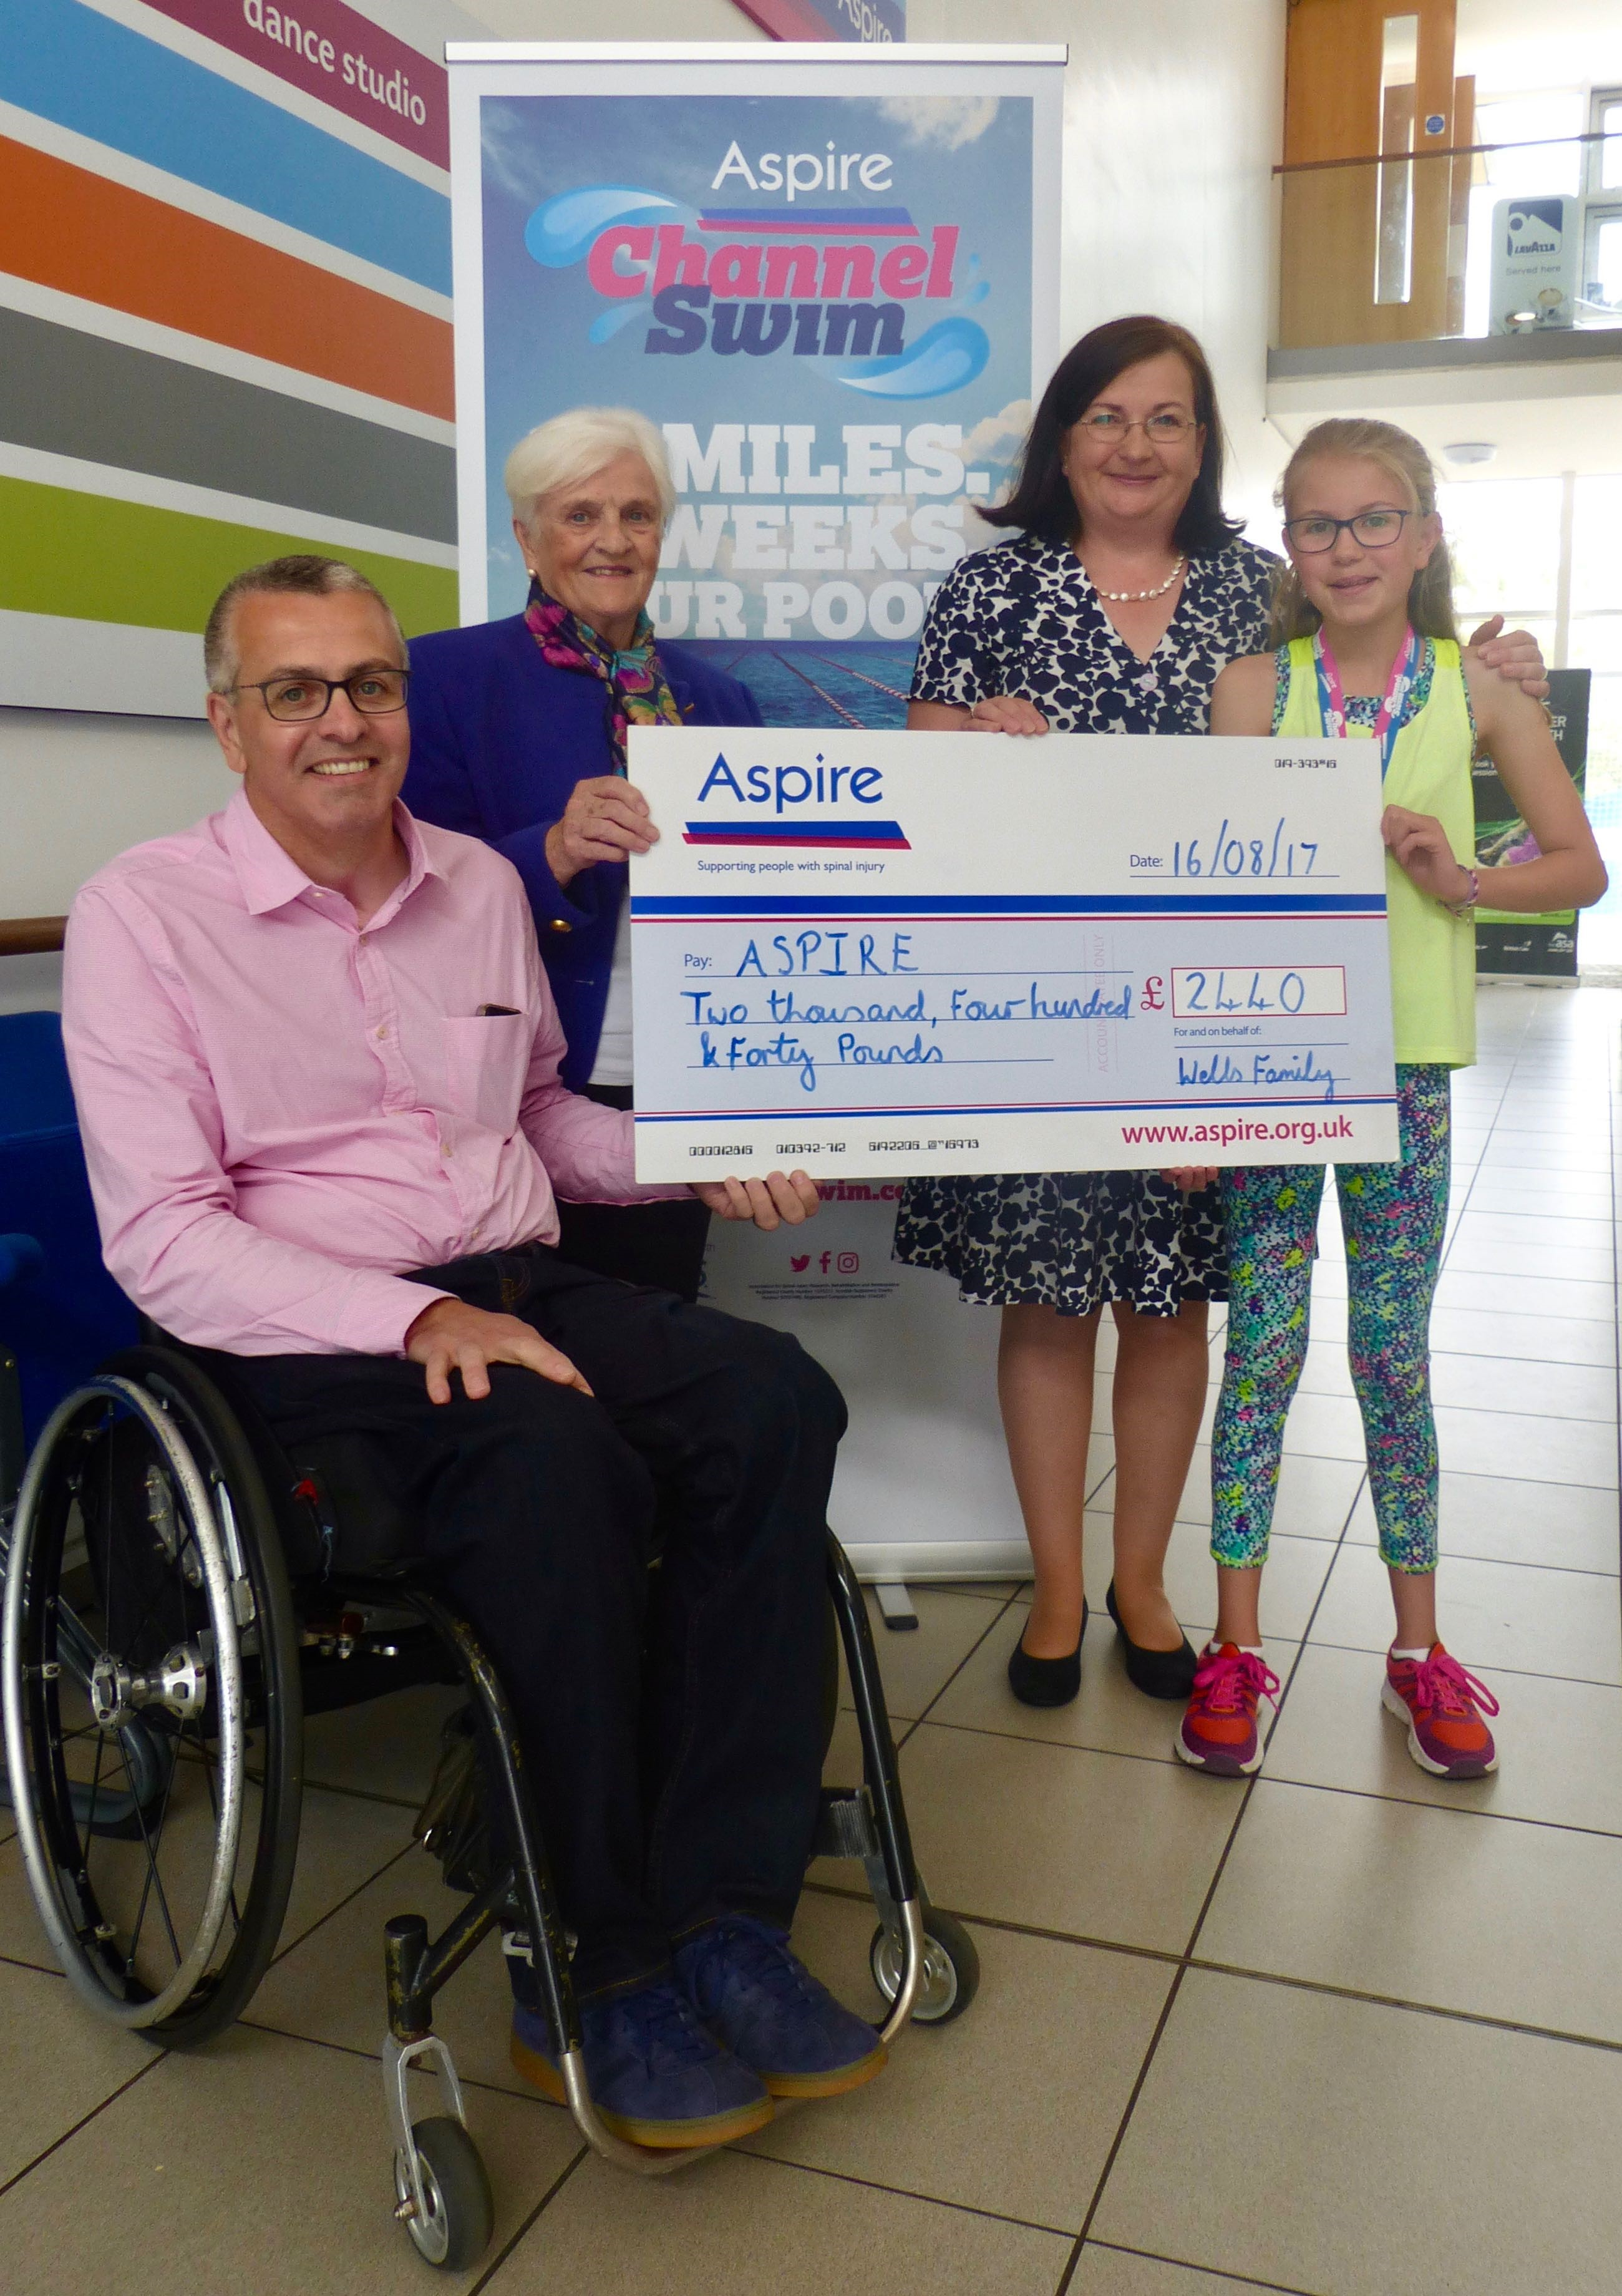 Peter, Valerie, Mary and Lily Wells present large cheque